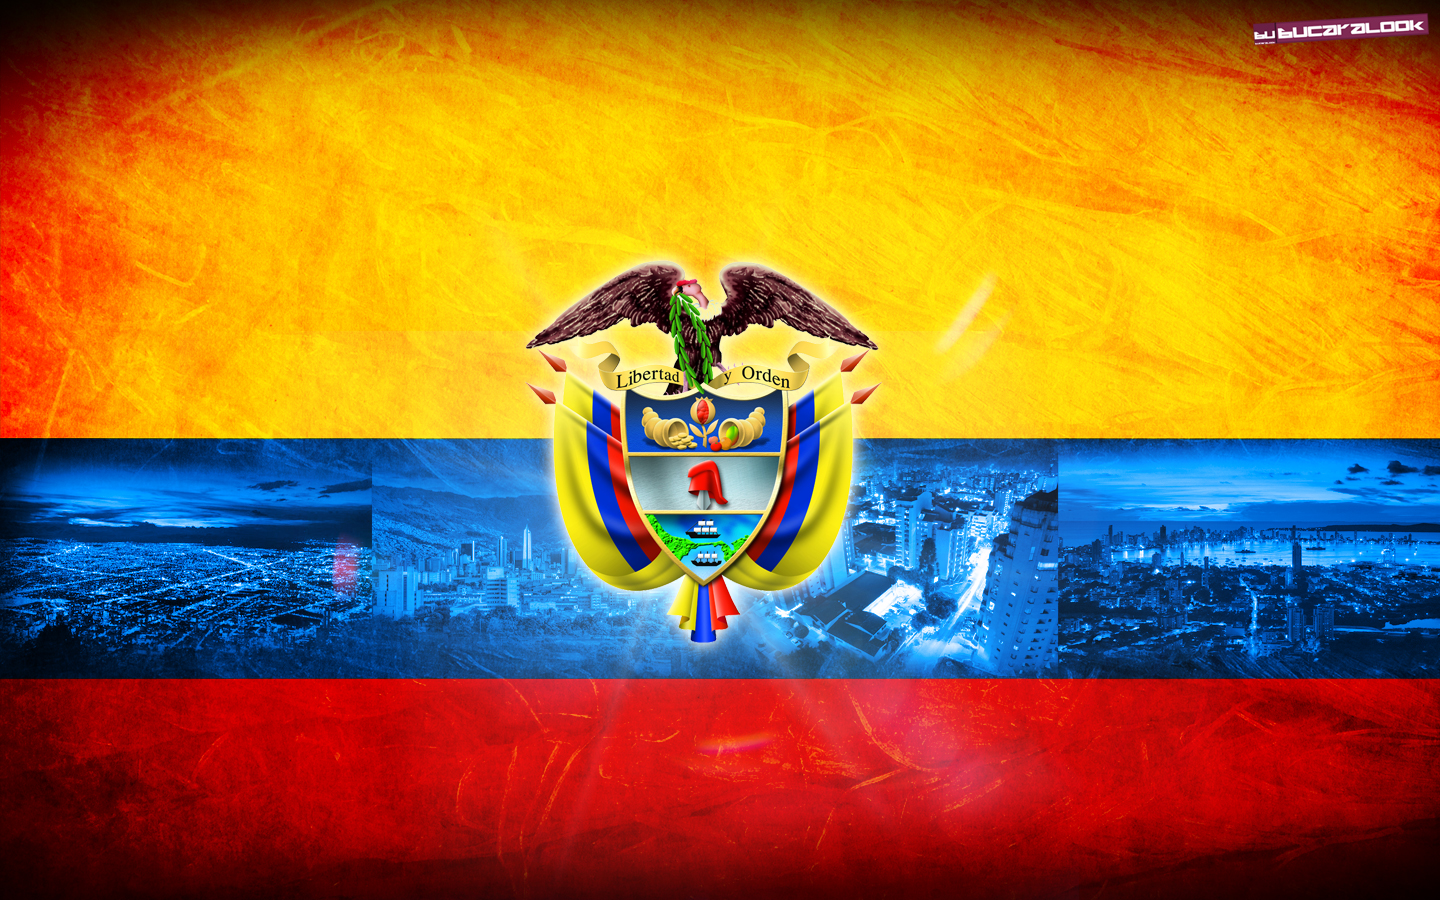 bandera_de_colombia___colombian_flag_by_bucaralook-d4lq4wh